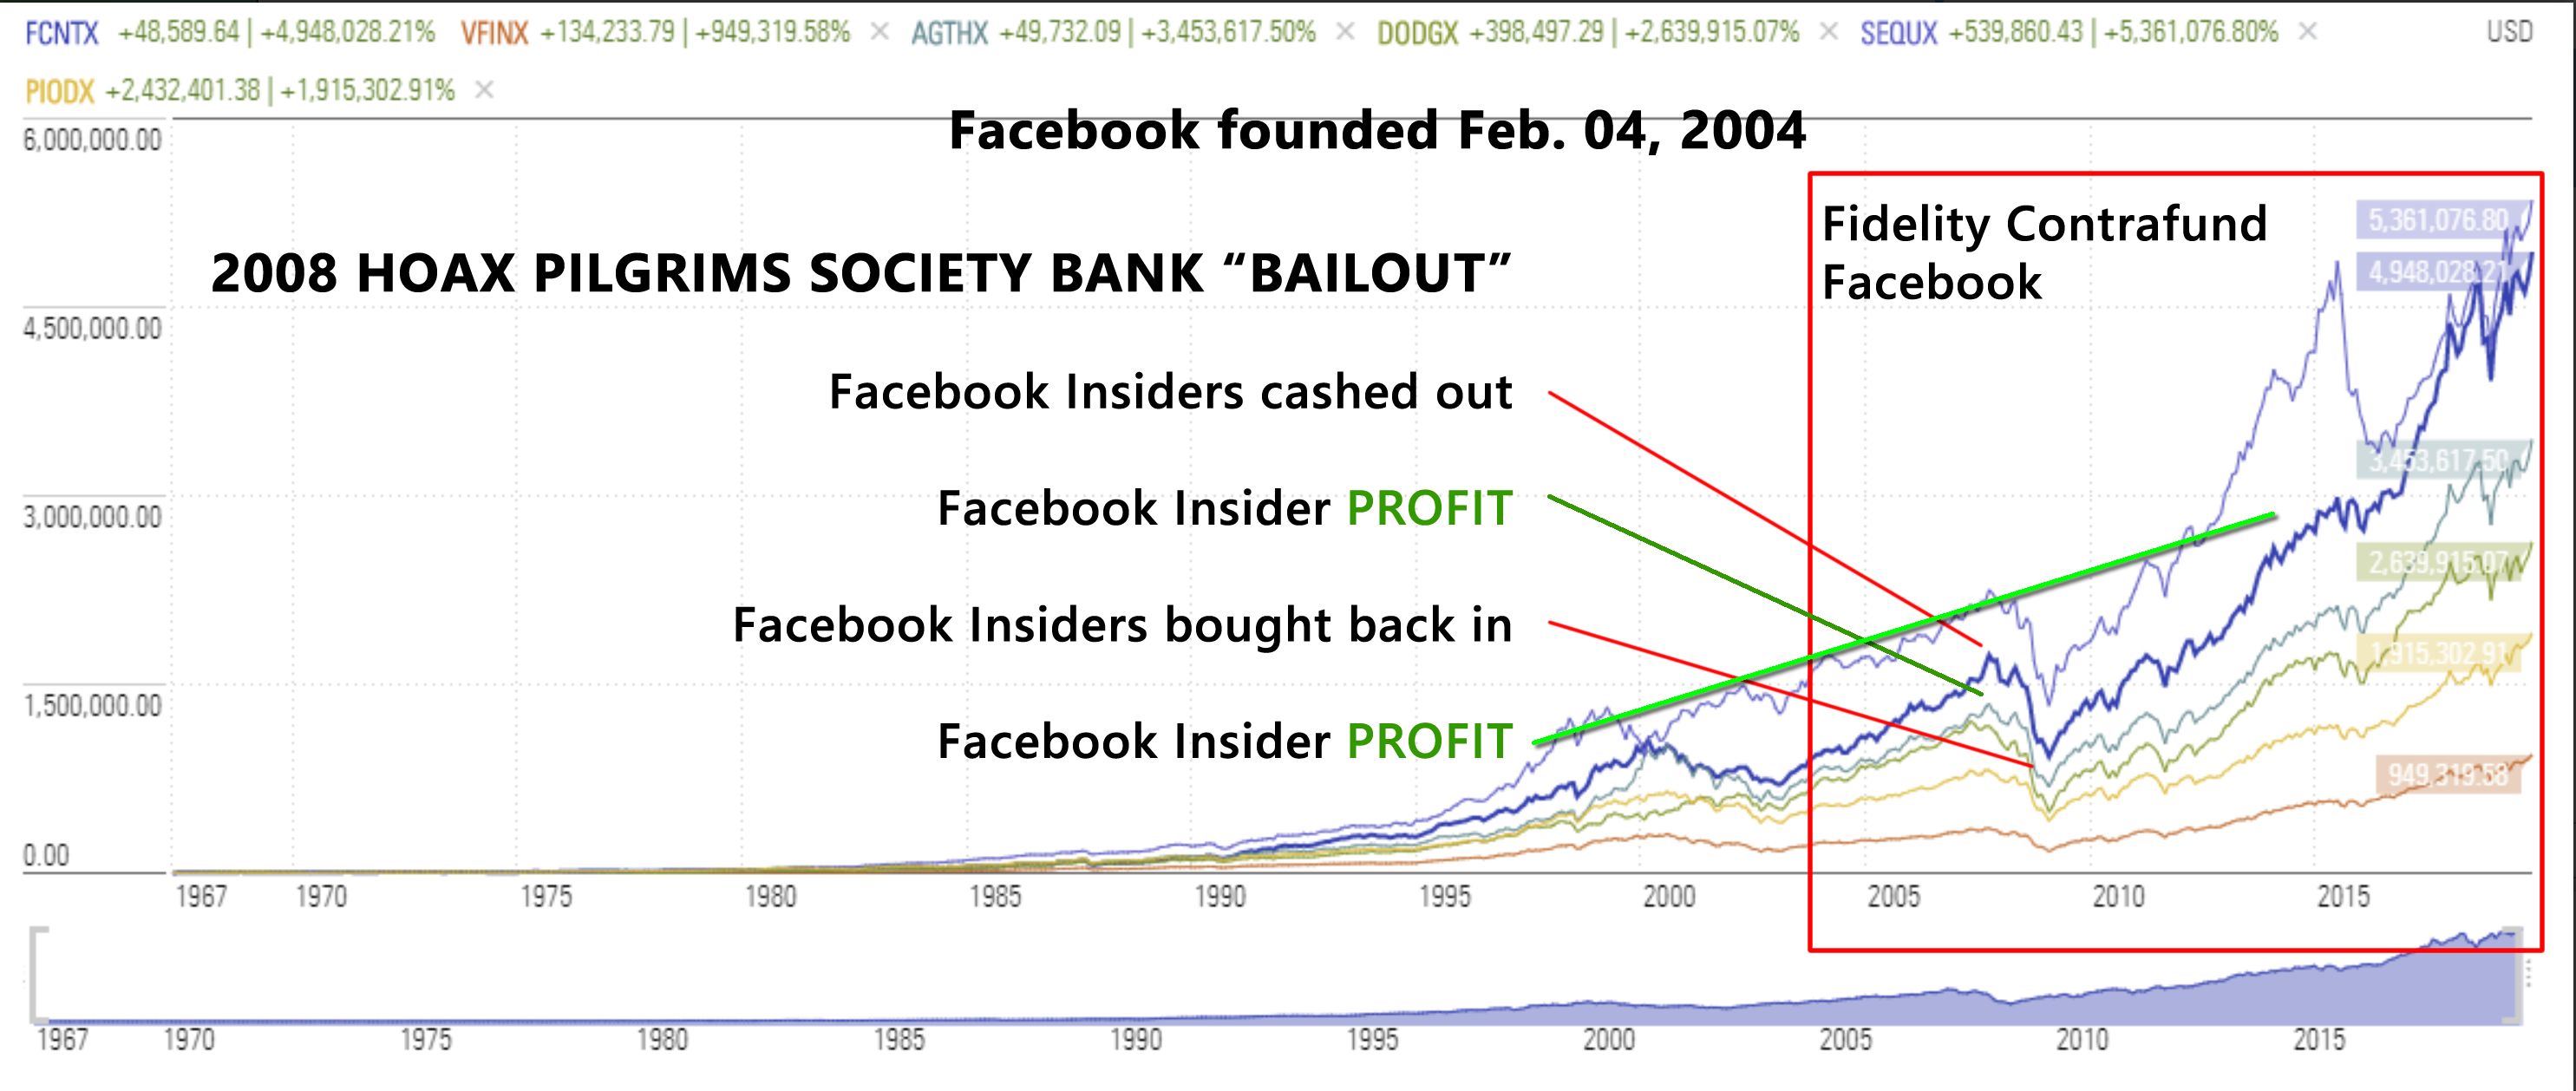 Fidelity Contrafund. (2020). 20-year trend of Facebook Holding. Fidelity.